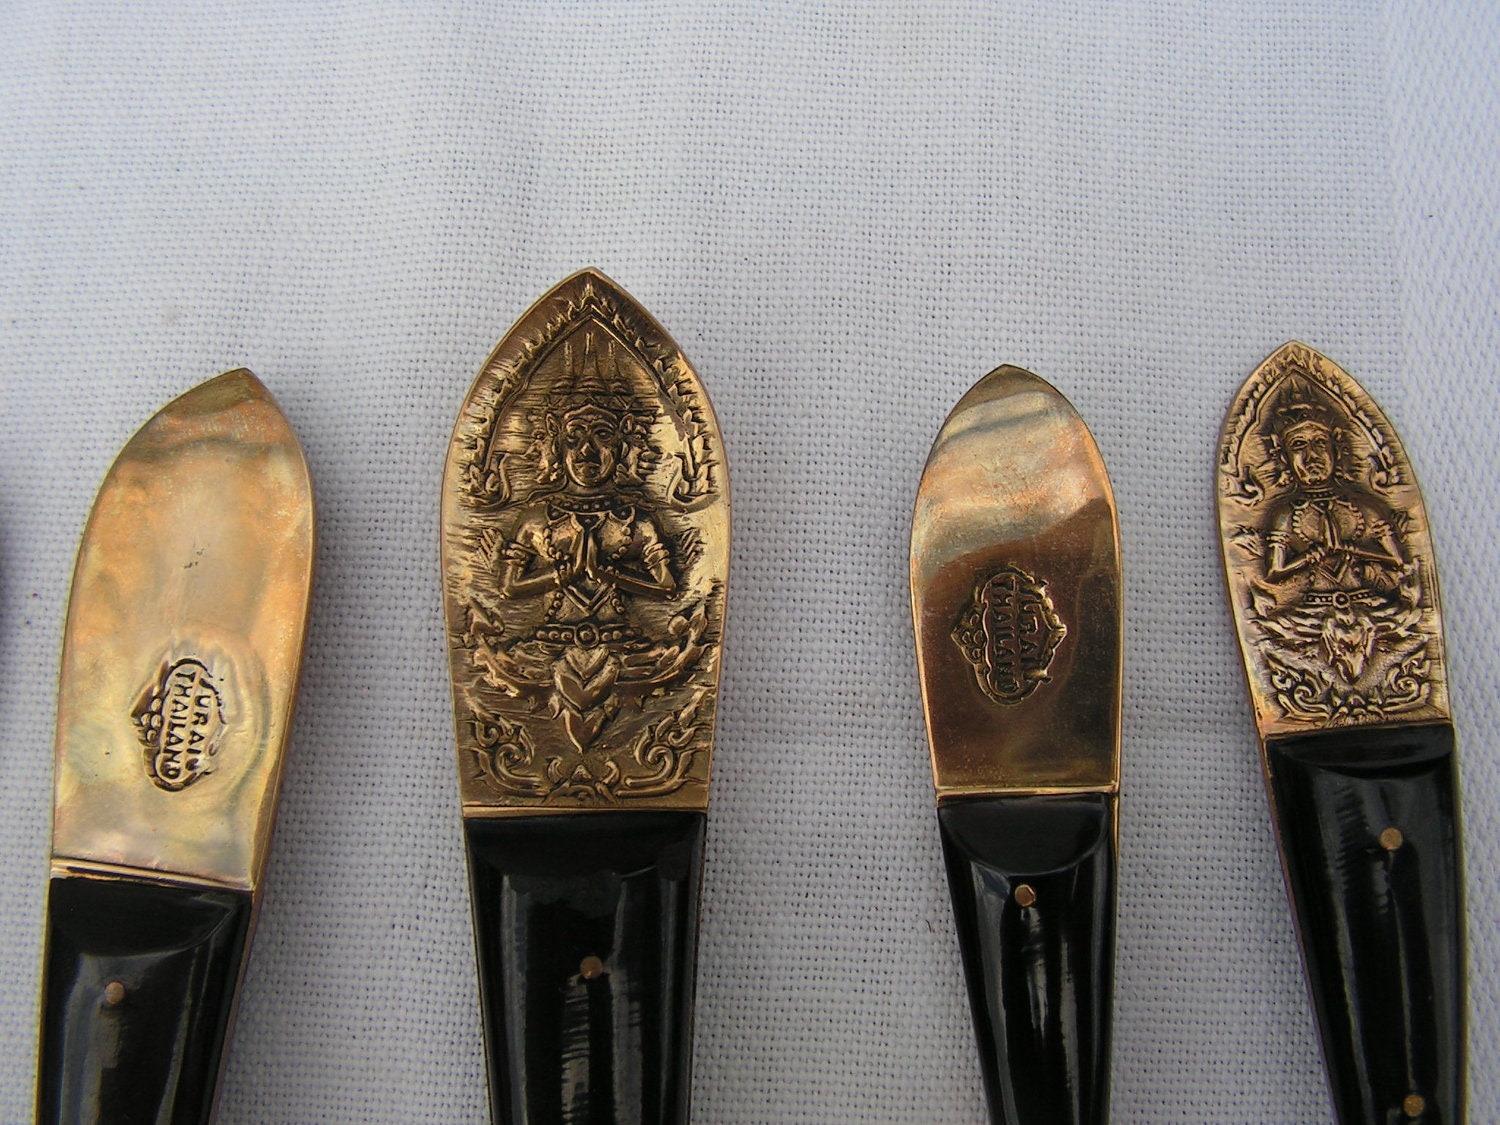 flatware thailand on Etsy, a global handmade and vintage marketplace.